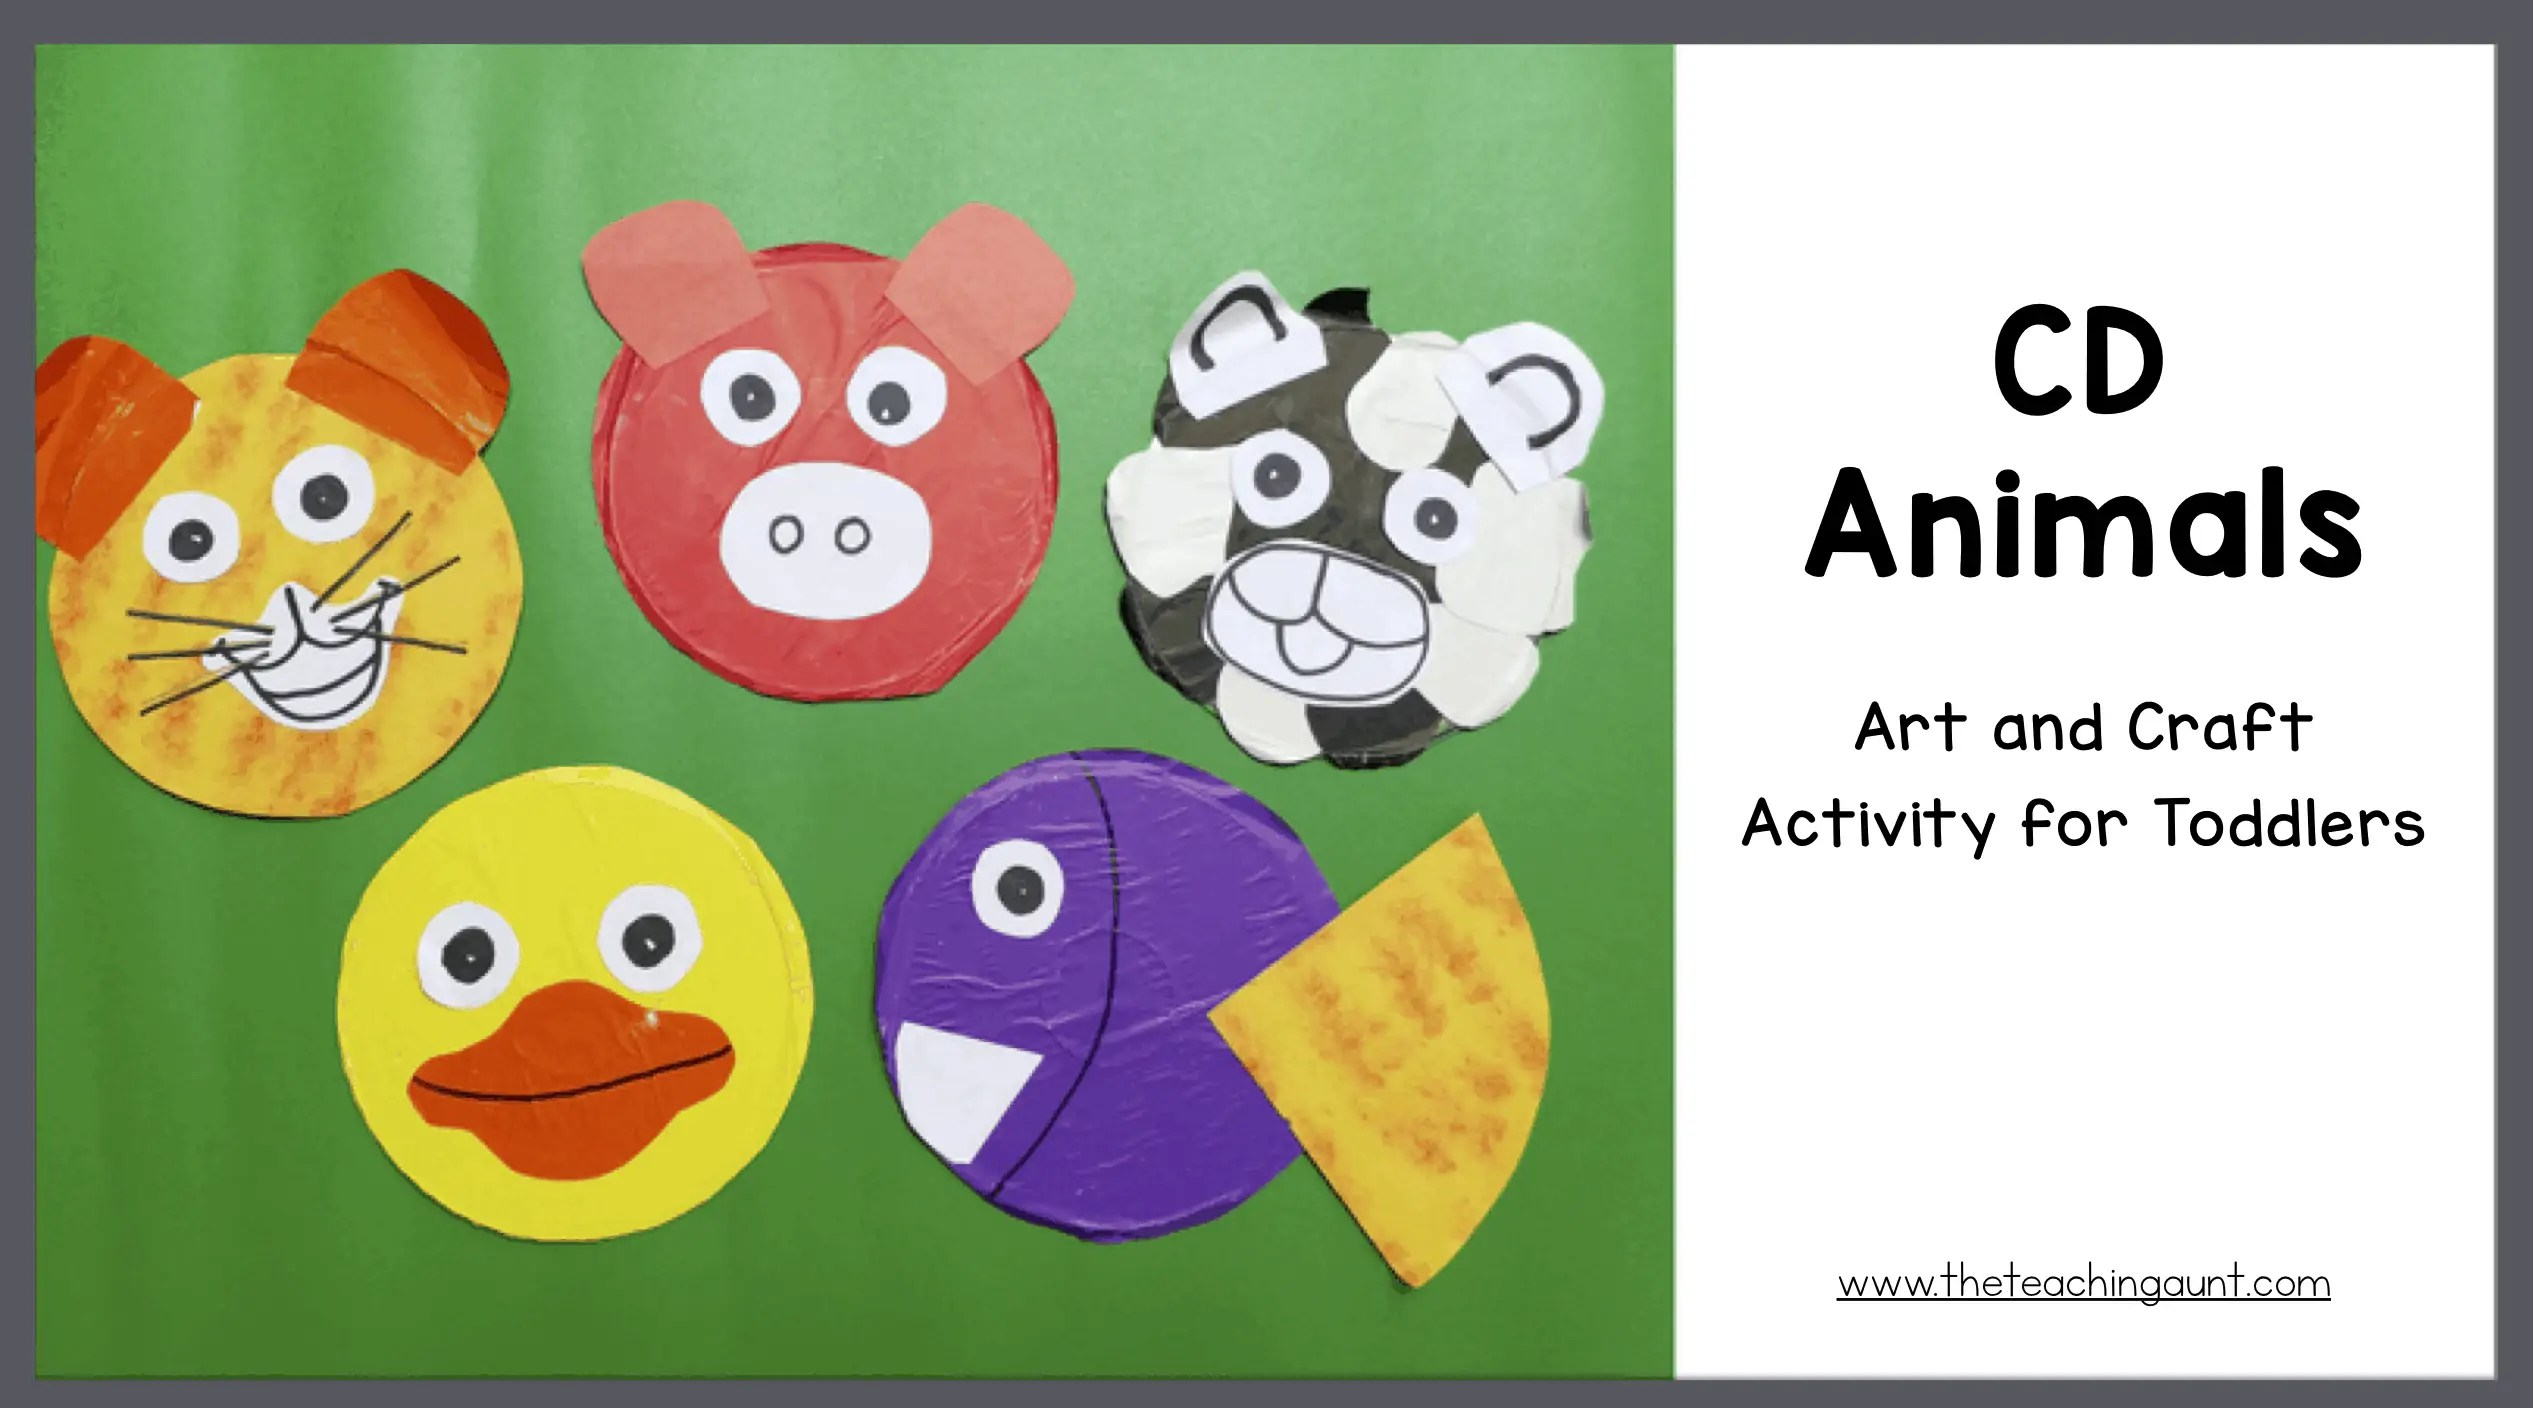 CD Animals Art and Craft for Toddlers - The Teaching Aunt